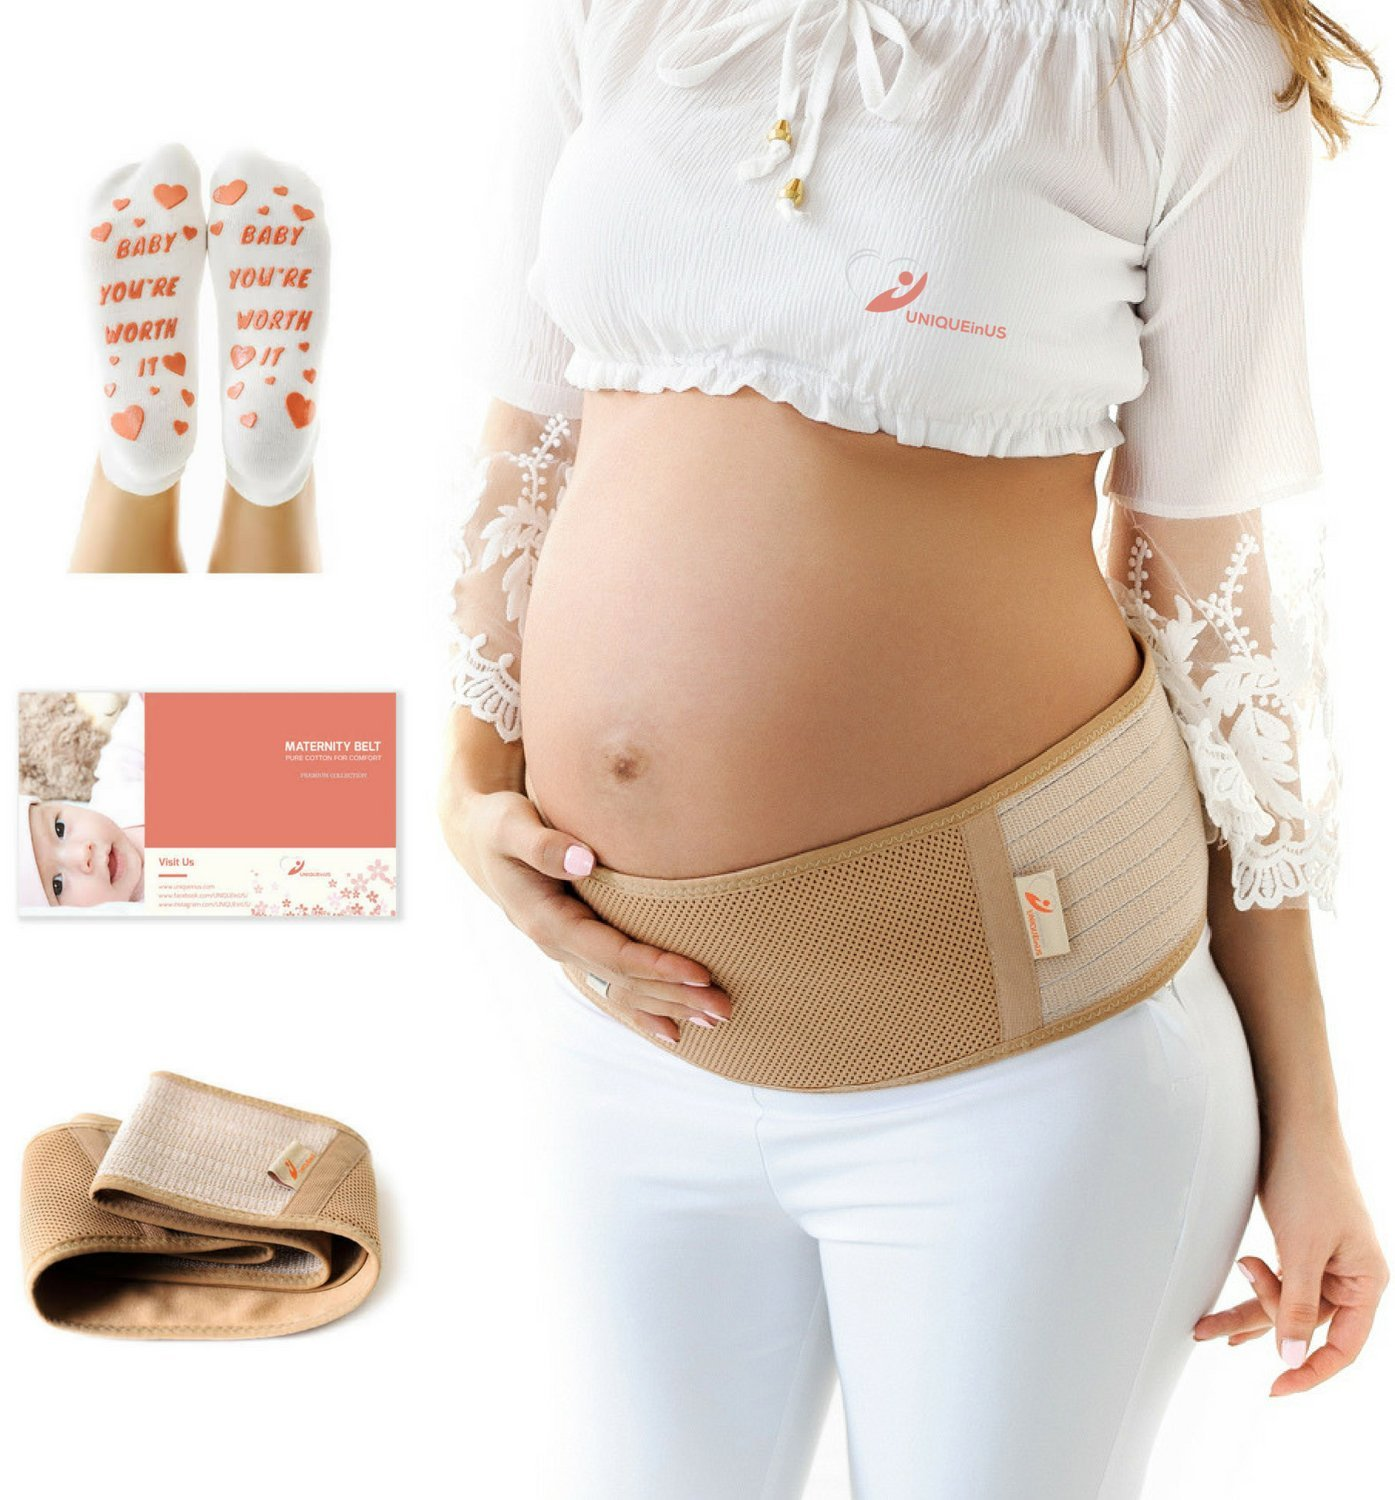 UNIQUEinUS Maternity Belt - Breathable Belly Band for Pregnancy Support - Hip, Pelvic & Lower Back Pain Relief. Adjustable Pregnancy Belt + Labour Socks Bonus. Abdominal Binder One Size, Beige